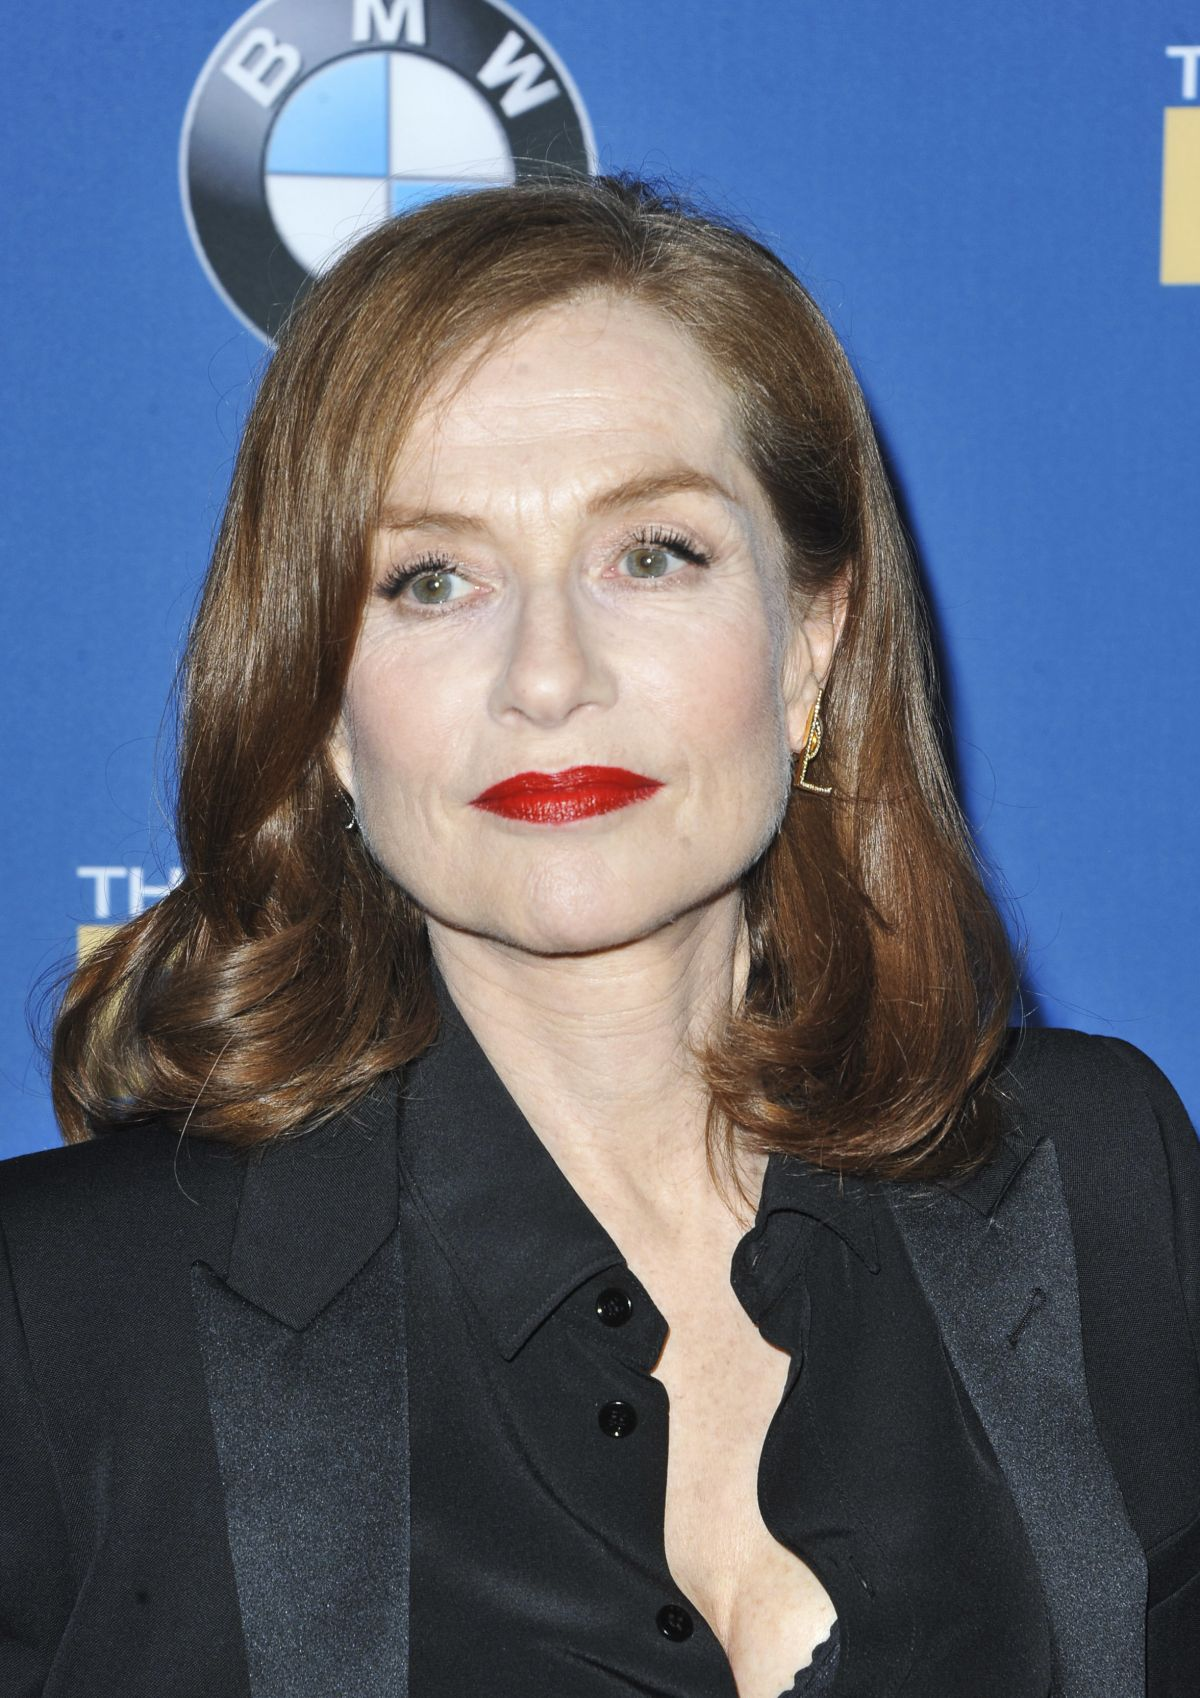 ISABELLE HUPPERT at 69th Annual Directors Guild of America Awards in Beverly Hills 02/04/2017 ...